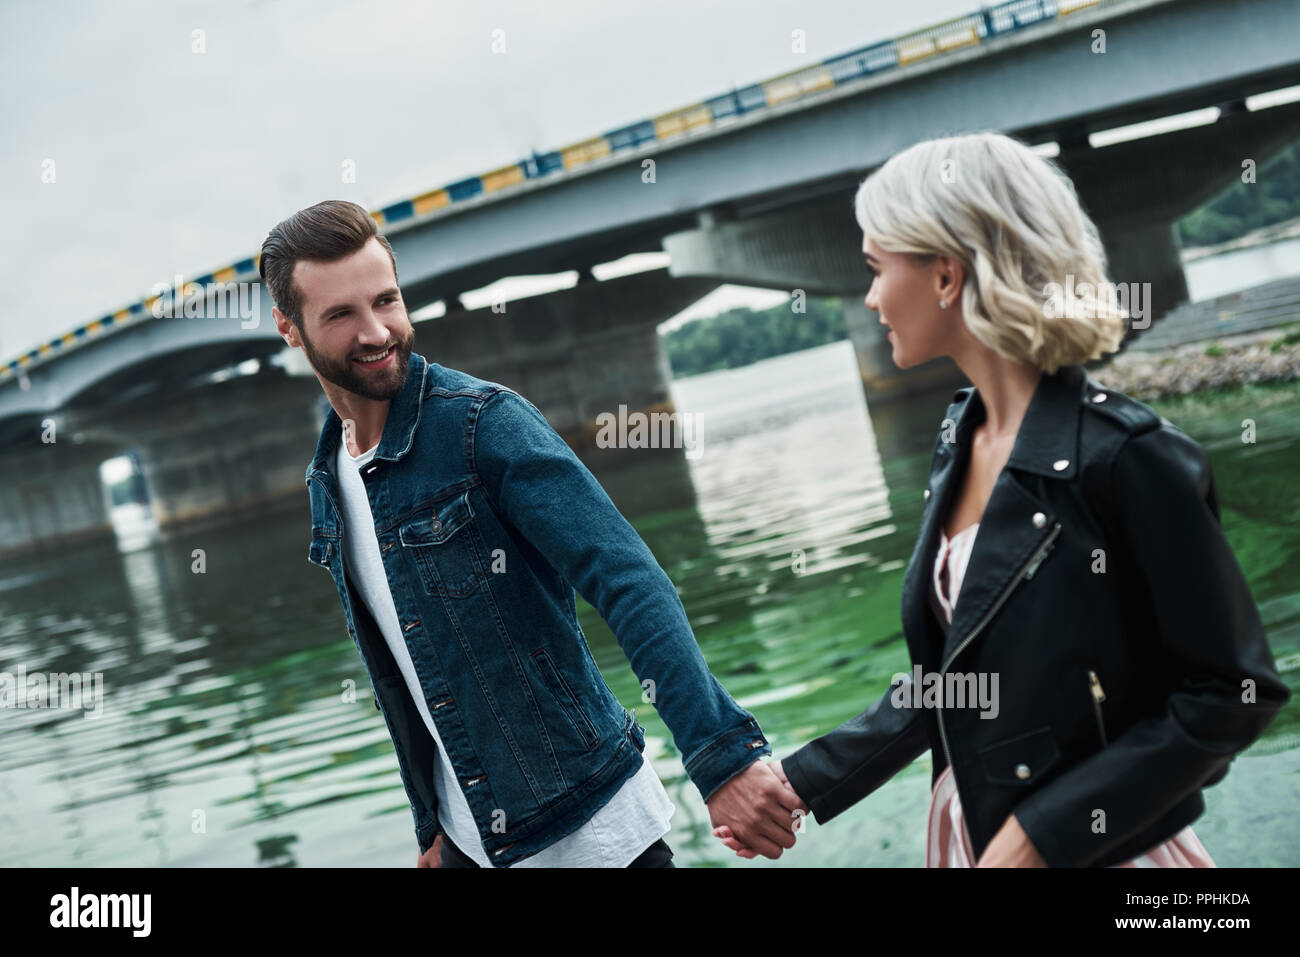 Romantic date outdoors. Young couple walking on the city street near water holding hands looking at each other talking smiling joyful - Stock Image